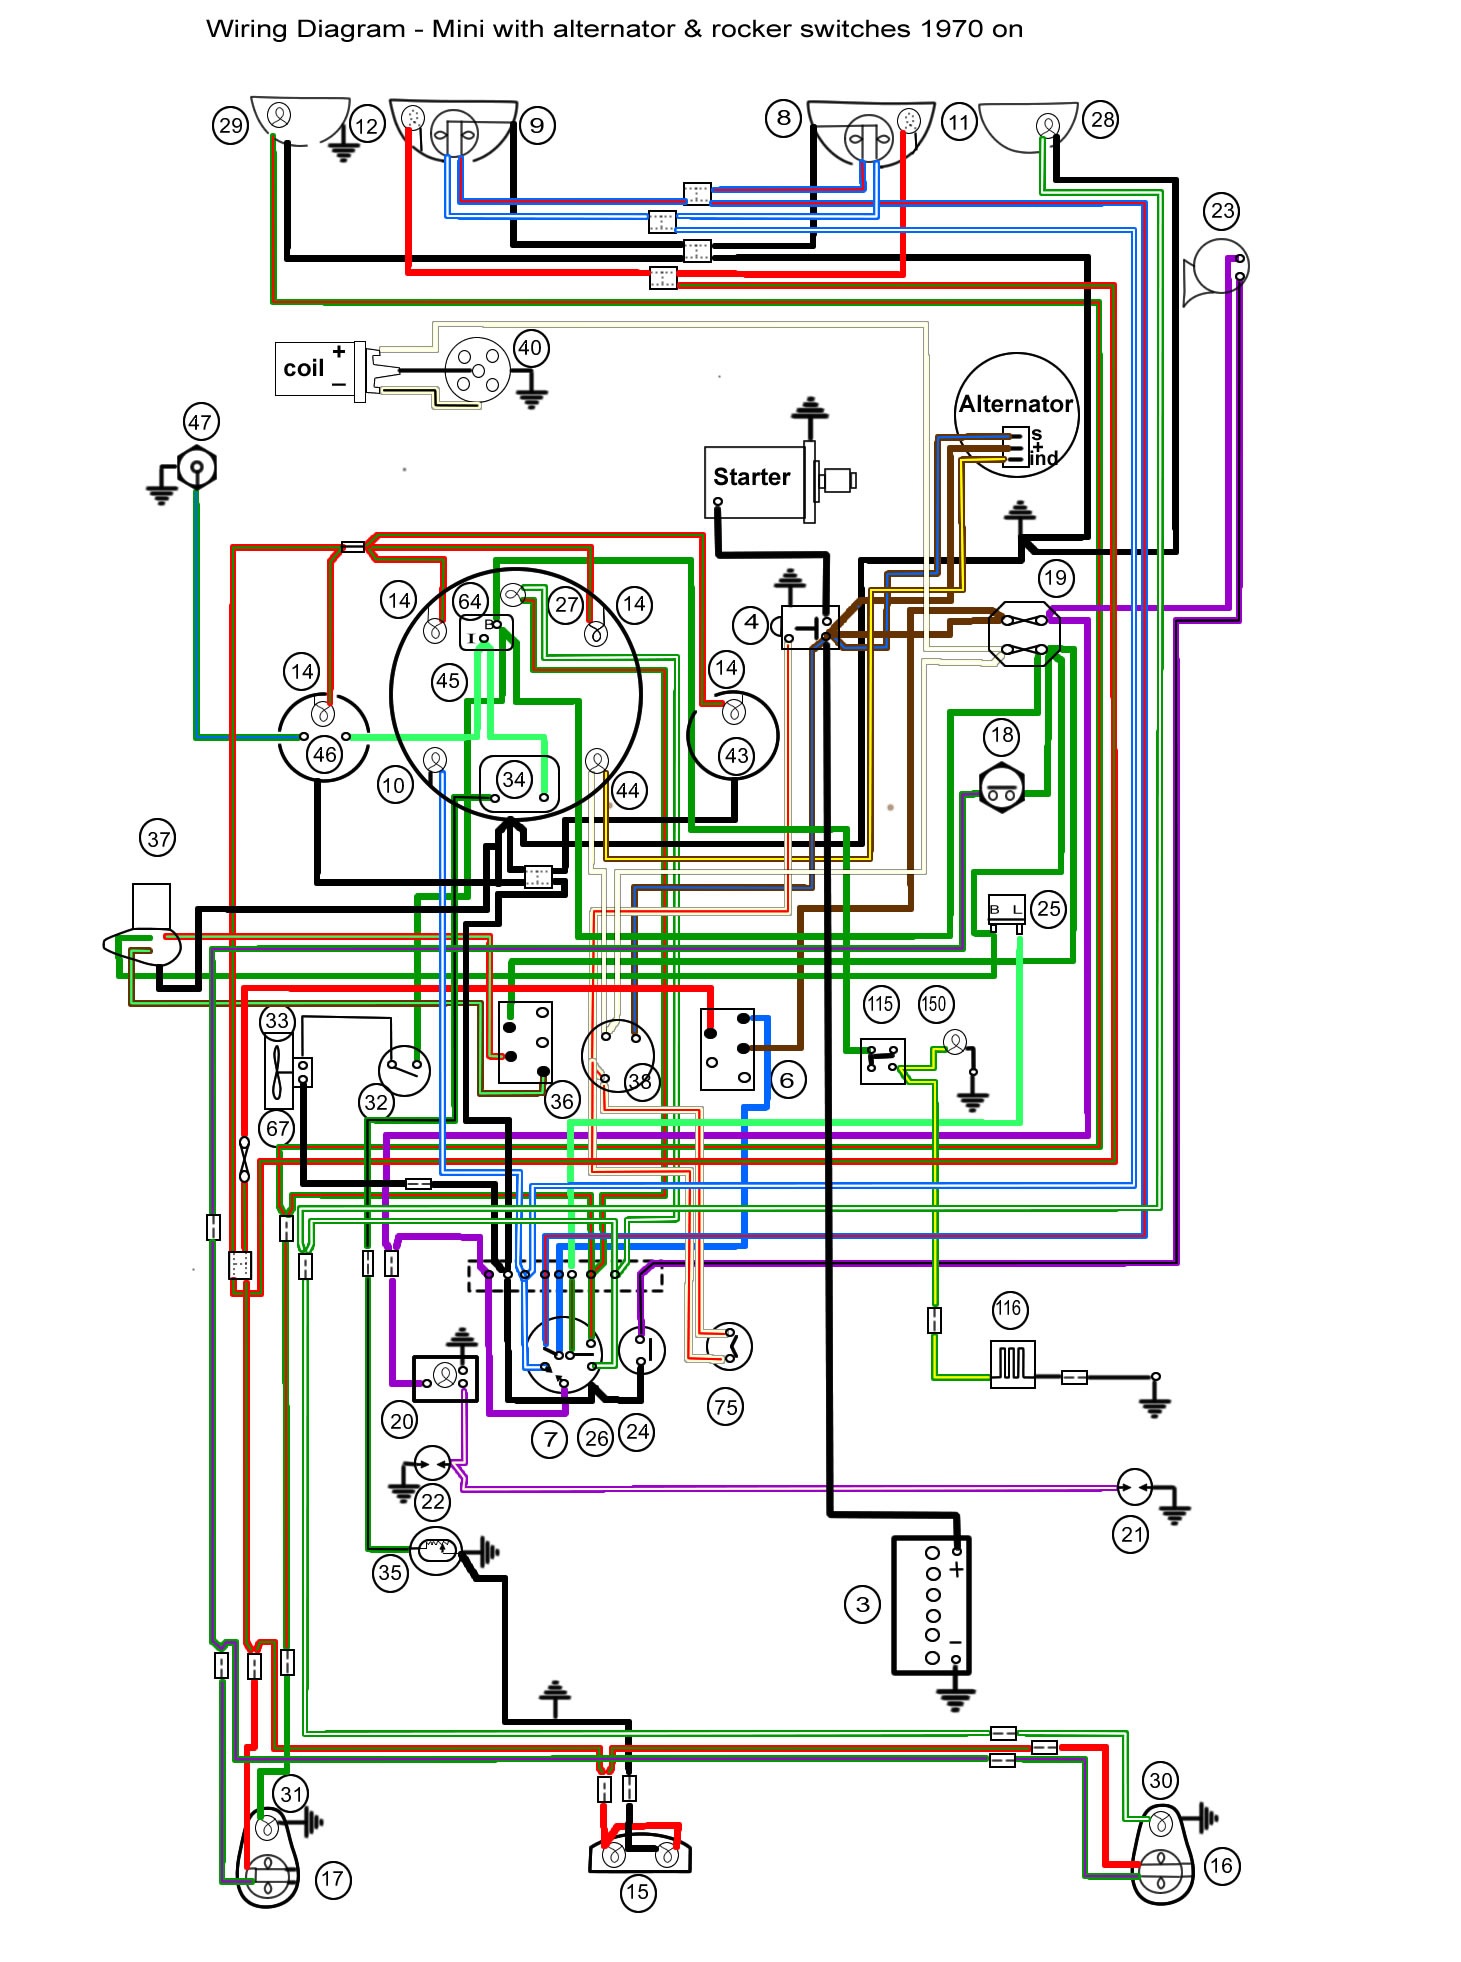 minifinity the classic mini forum and resource view topic colour wiring diagram